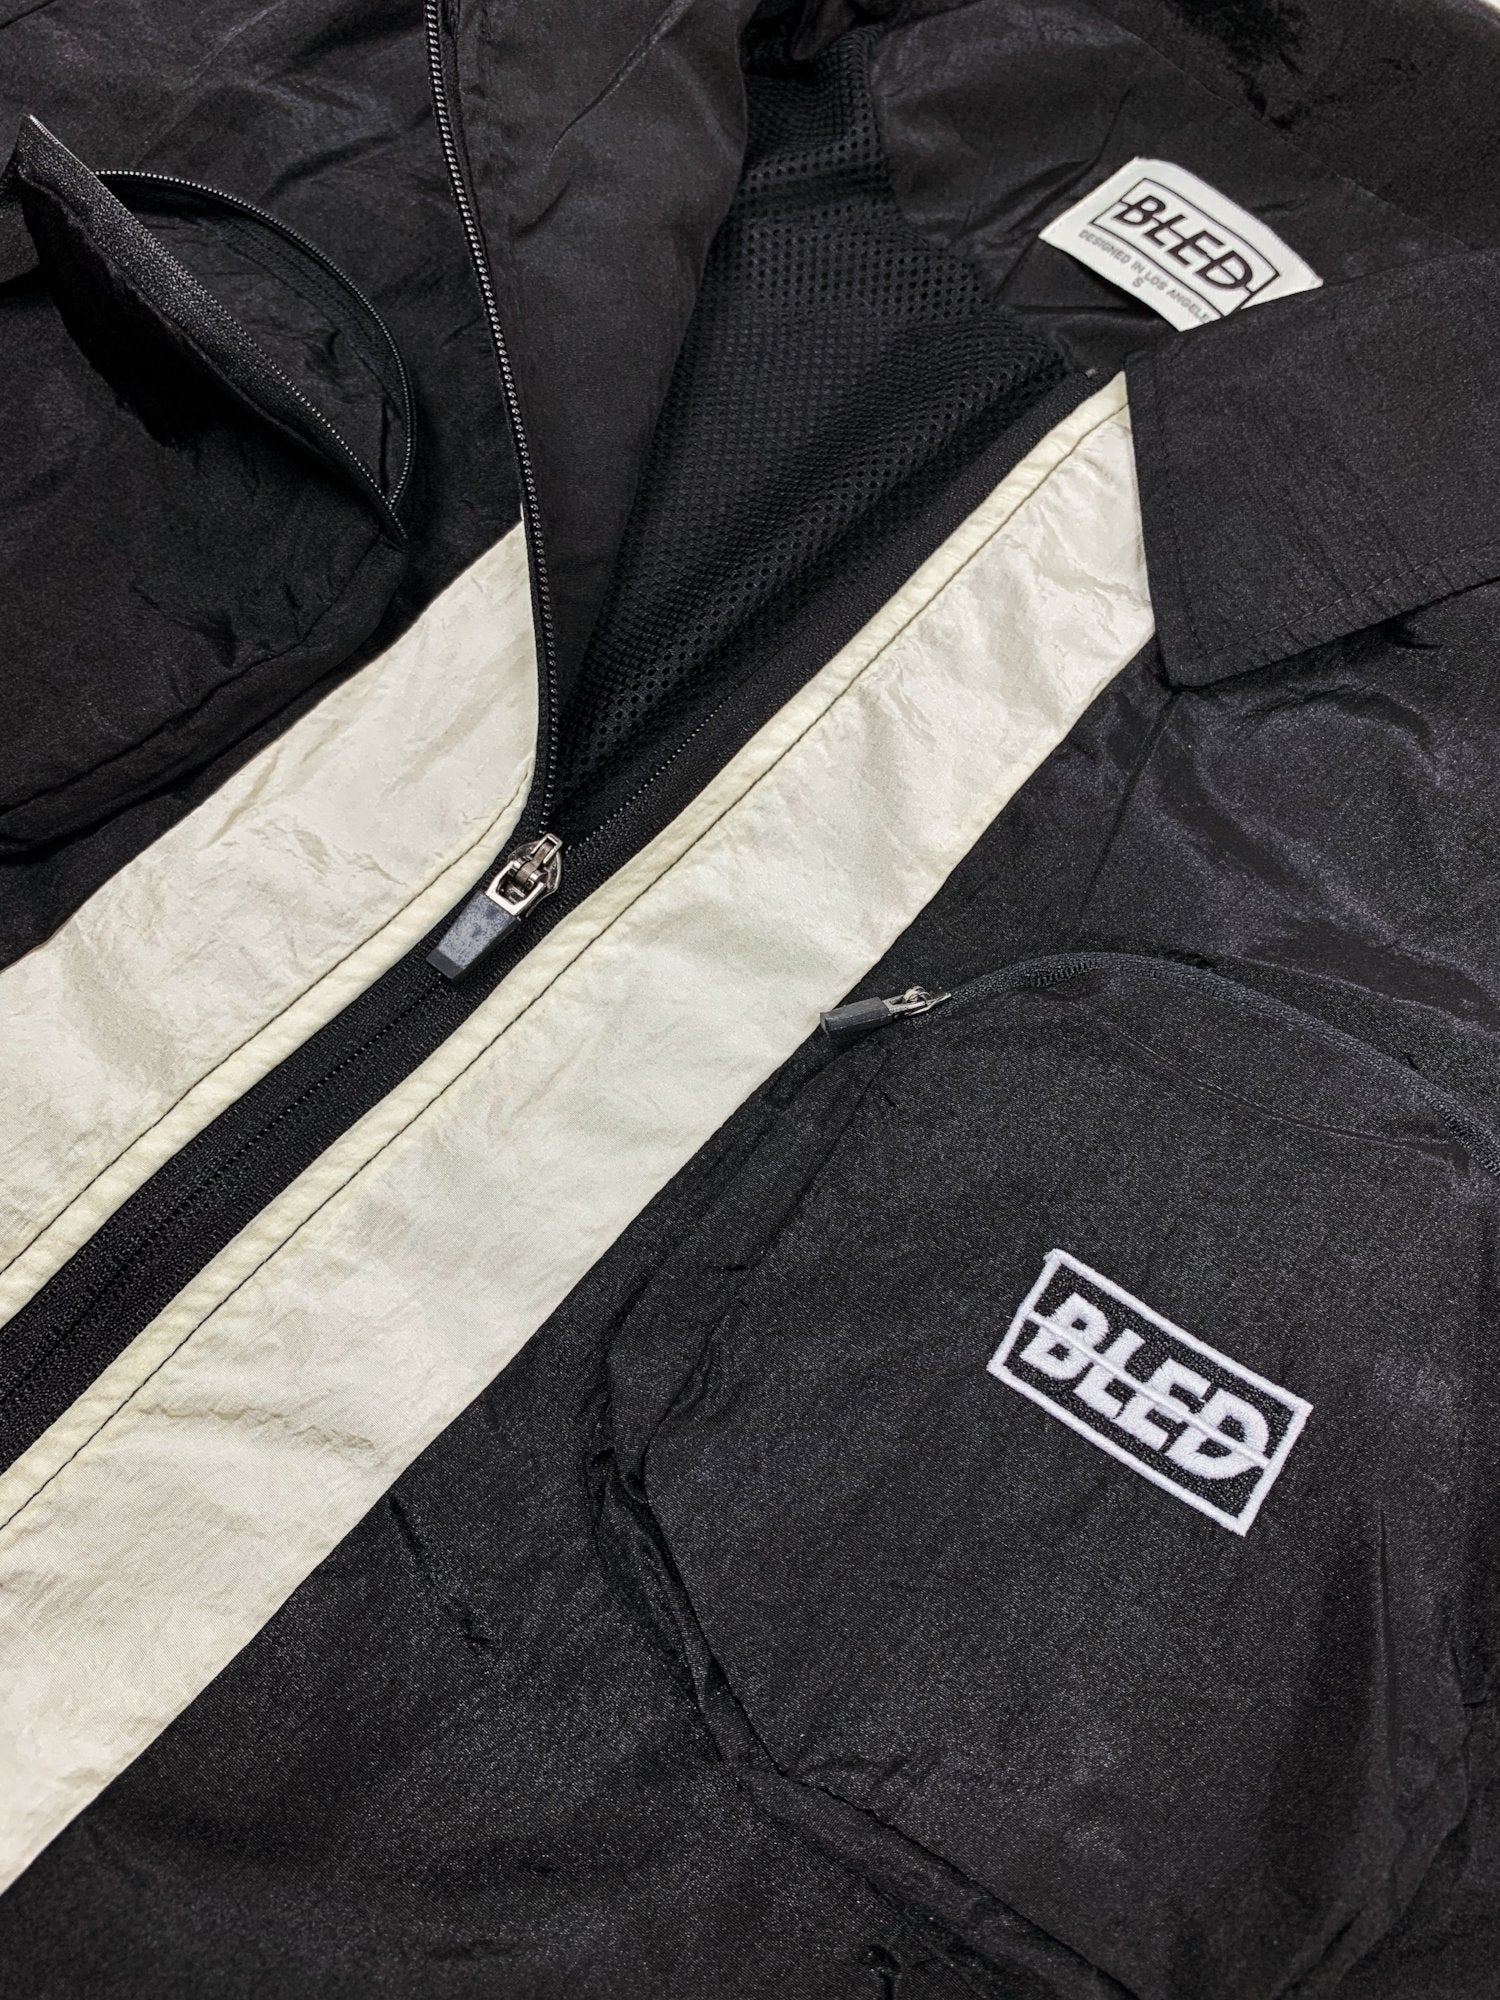 bled jacket bledwear overshirt windbreaker hype hypebeast mens clothing streetwear